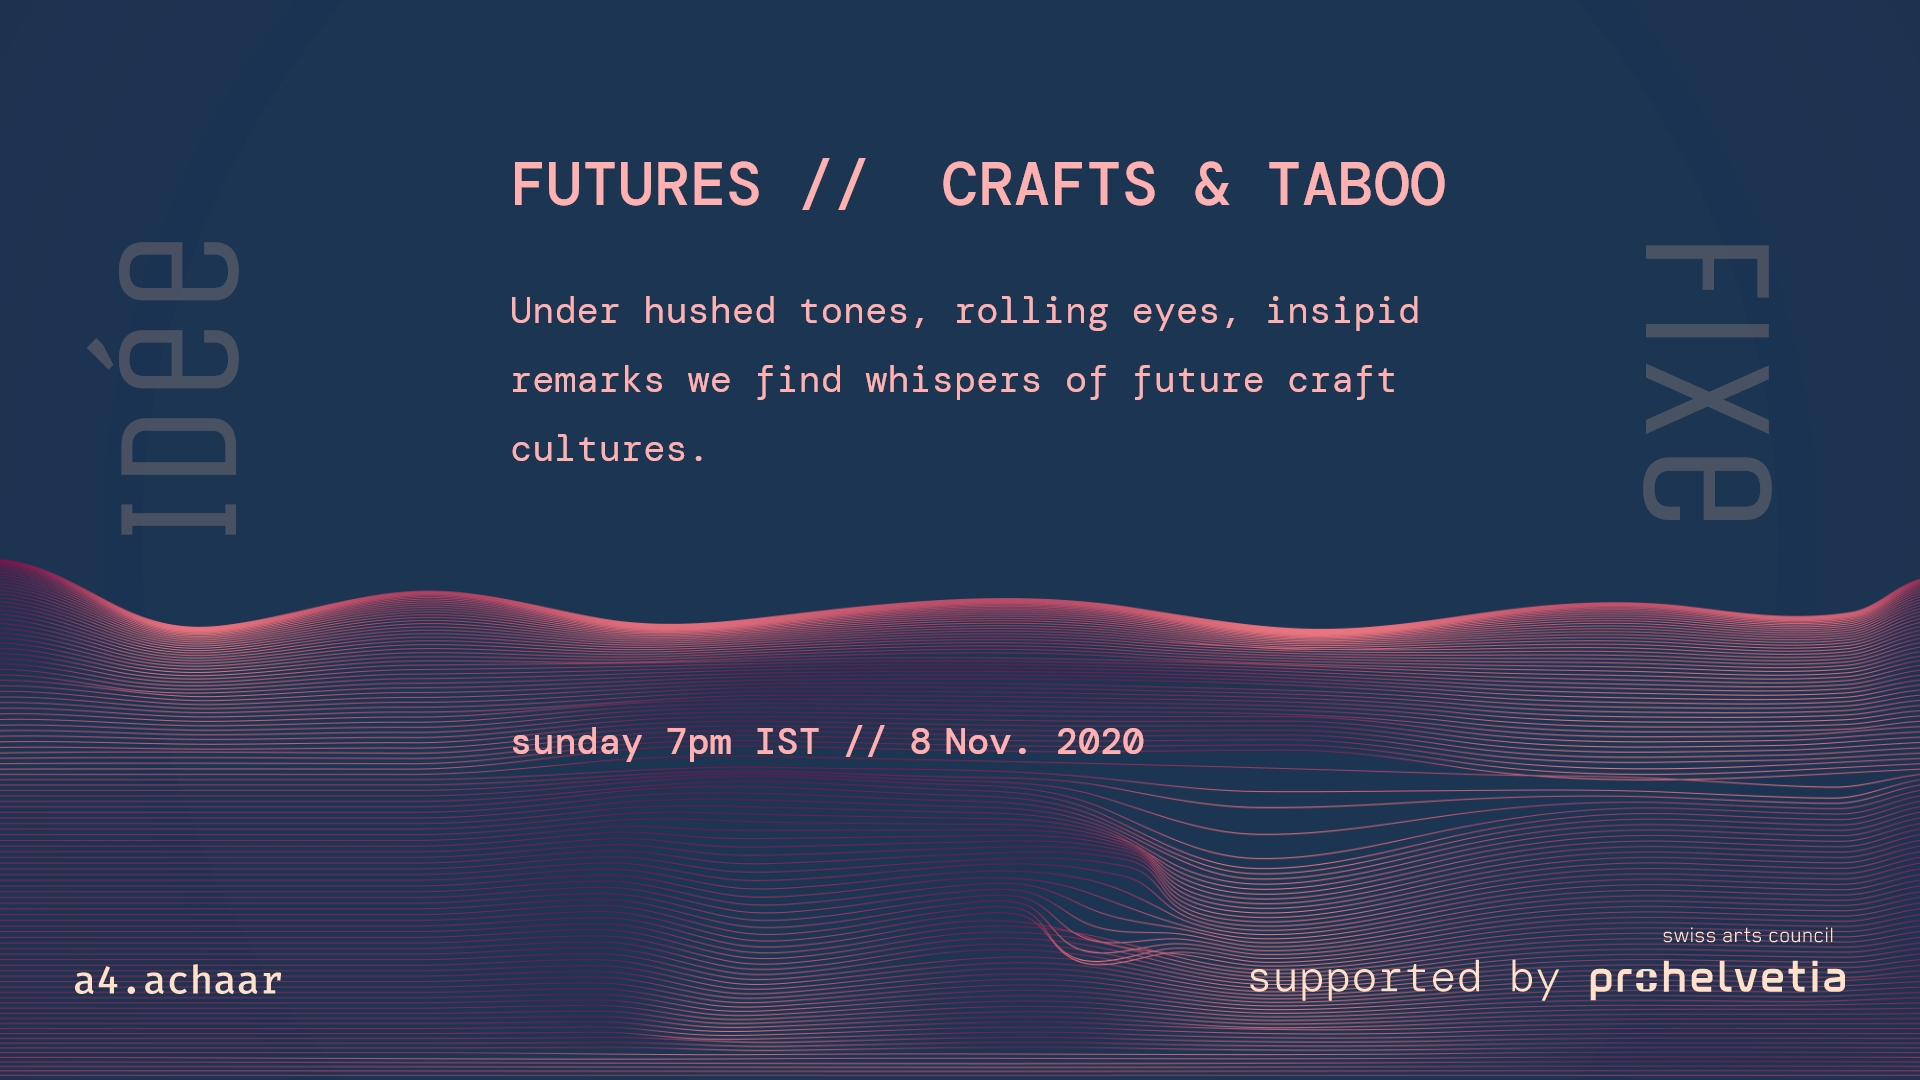 FUTURES // CRAFTS & TABOO